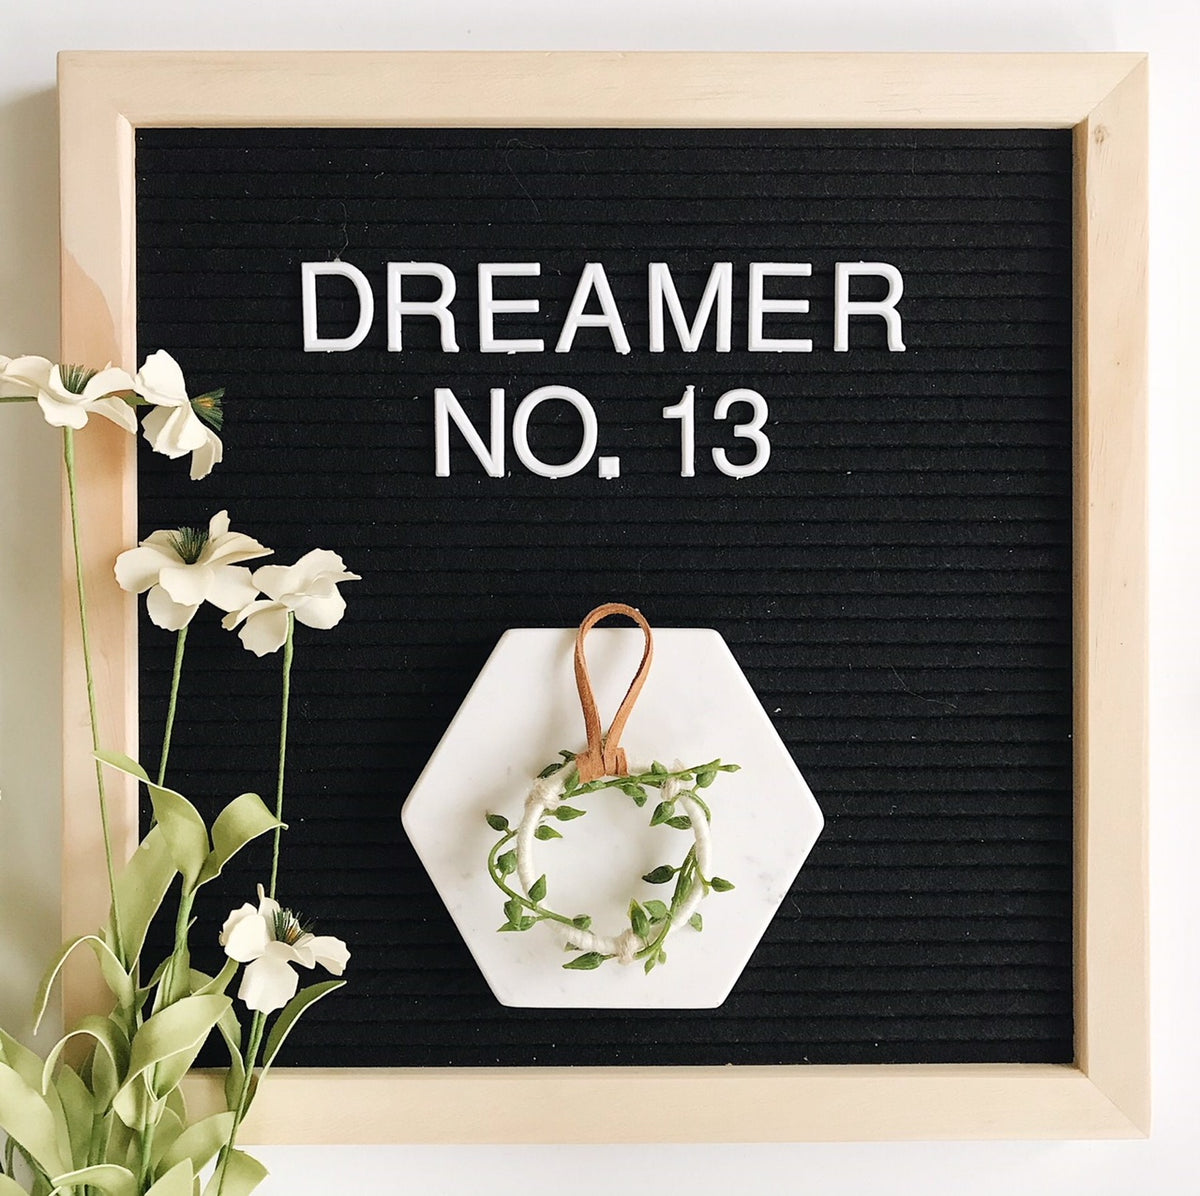 Dreamer No. 13 | 100 Days of Dreamers